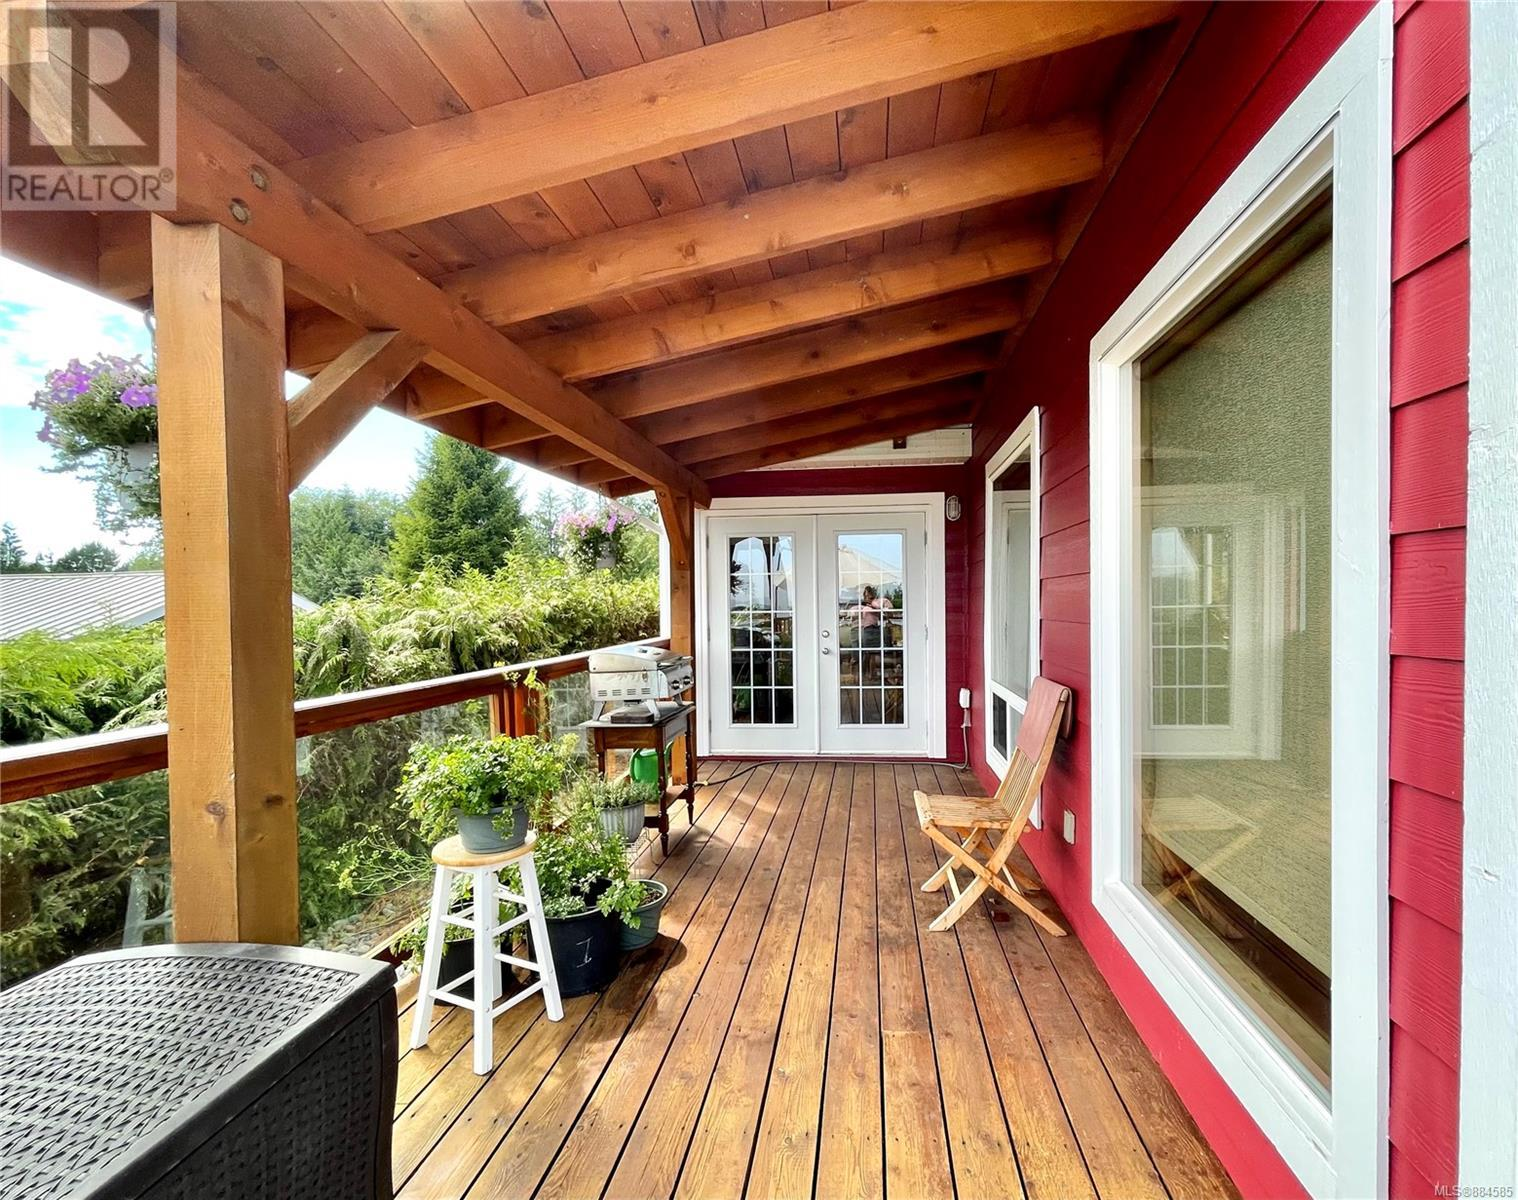 MLS® #884585 - Ucluelet House For sale Image #28